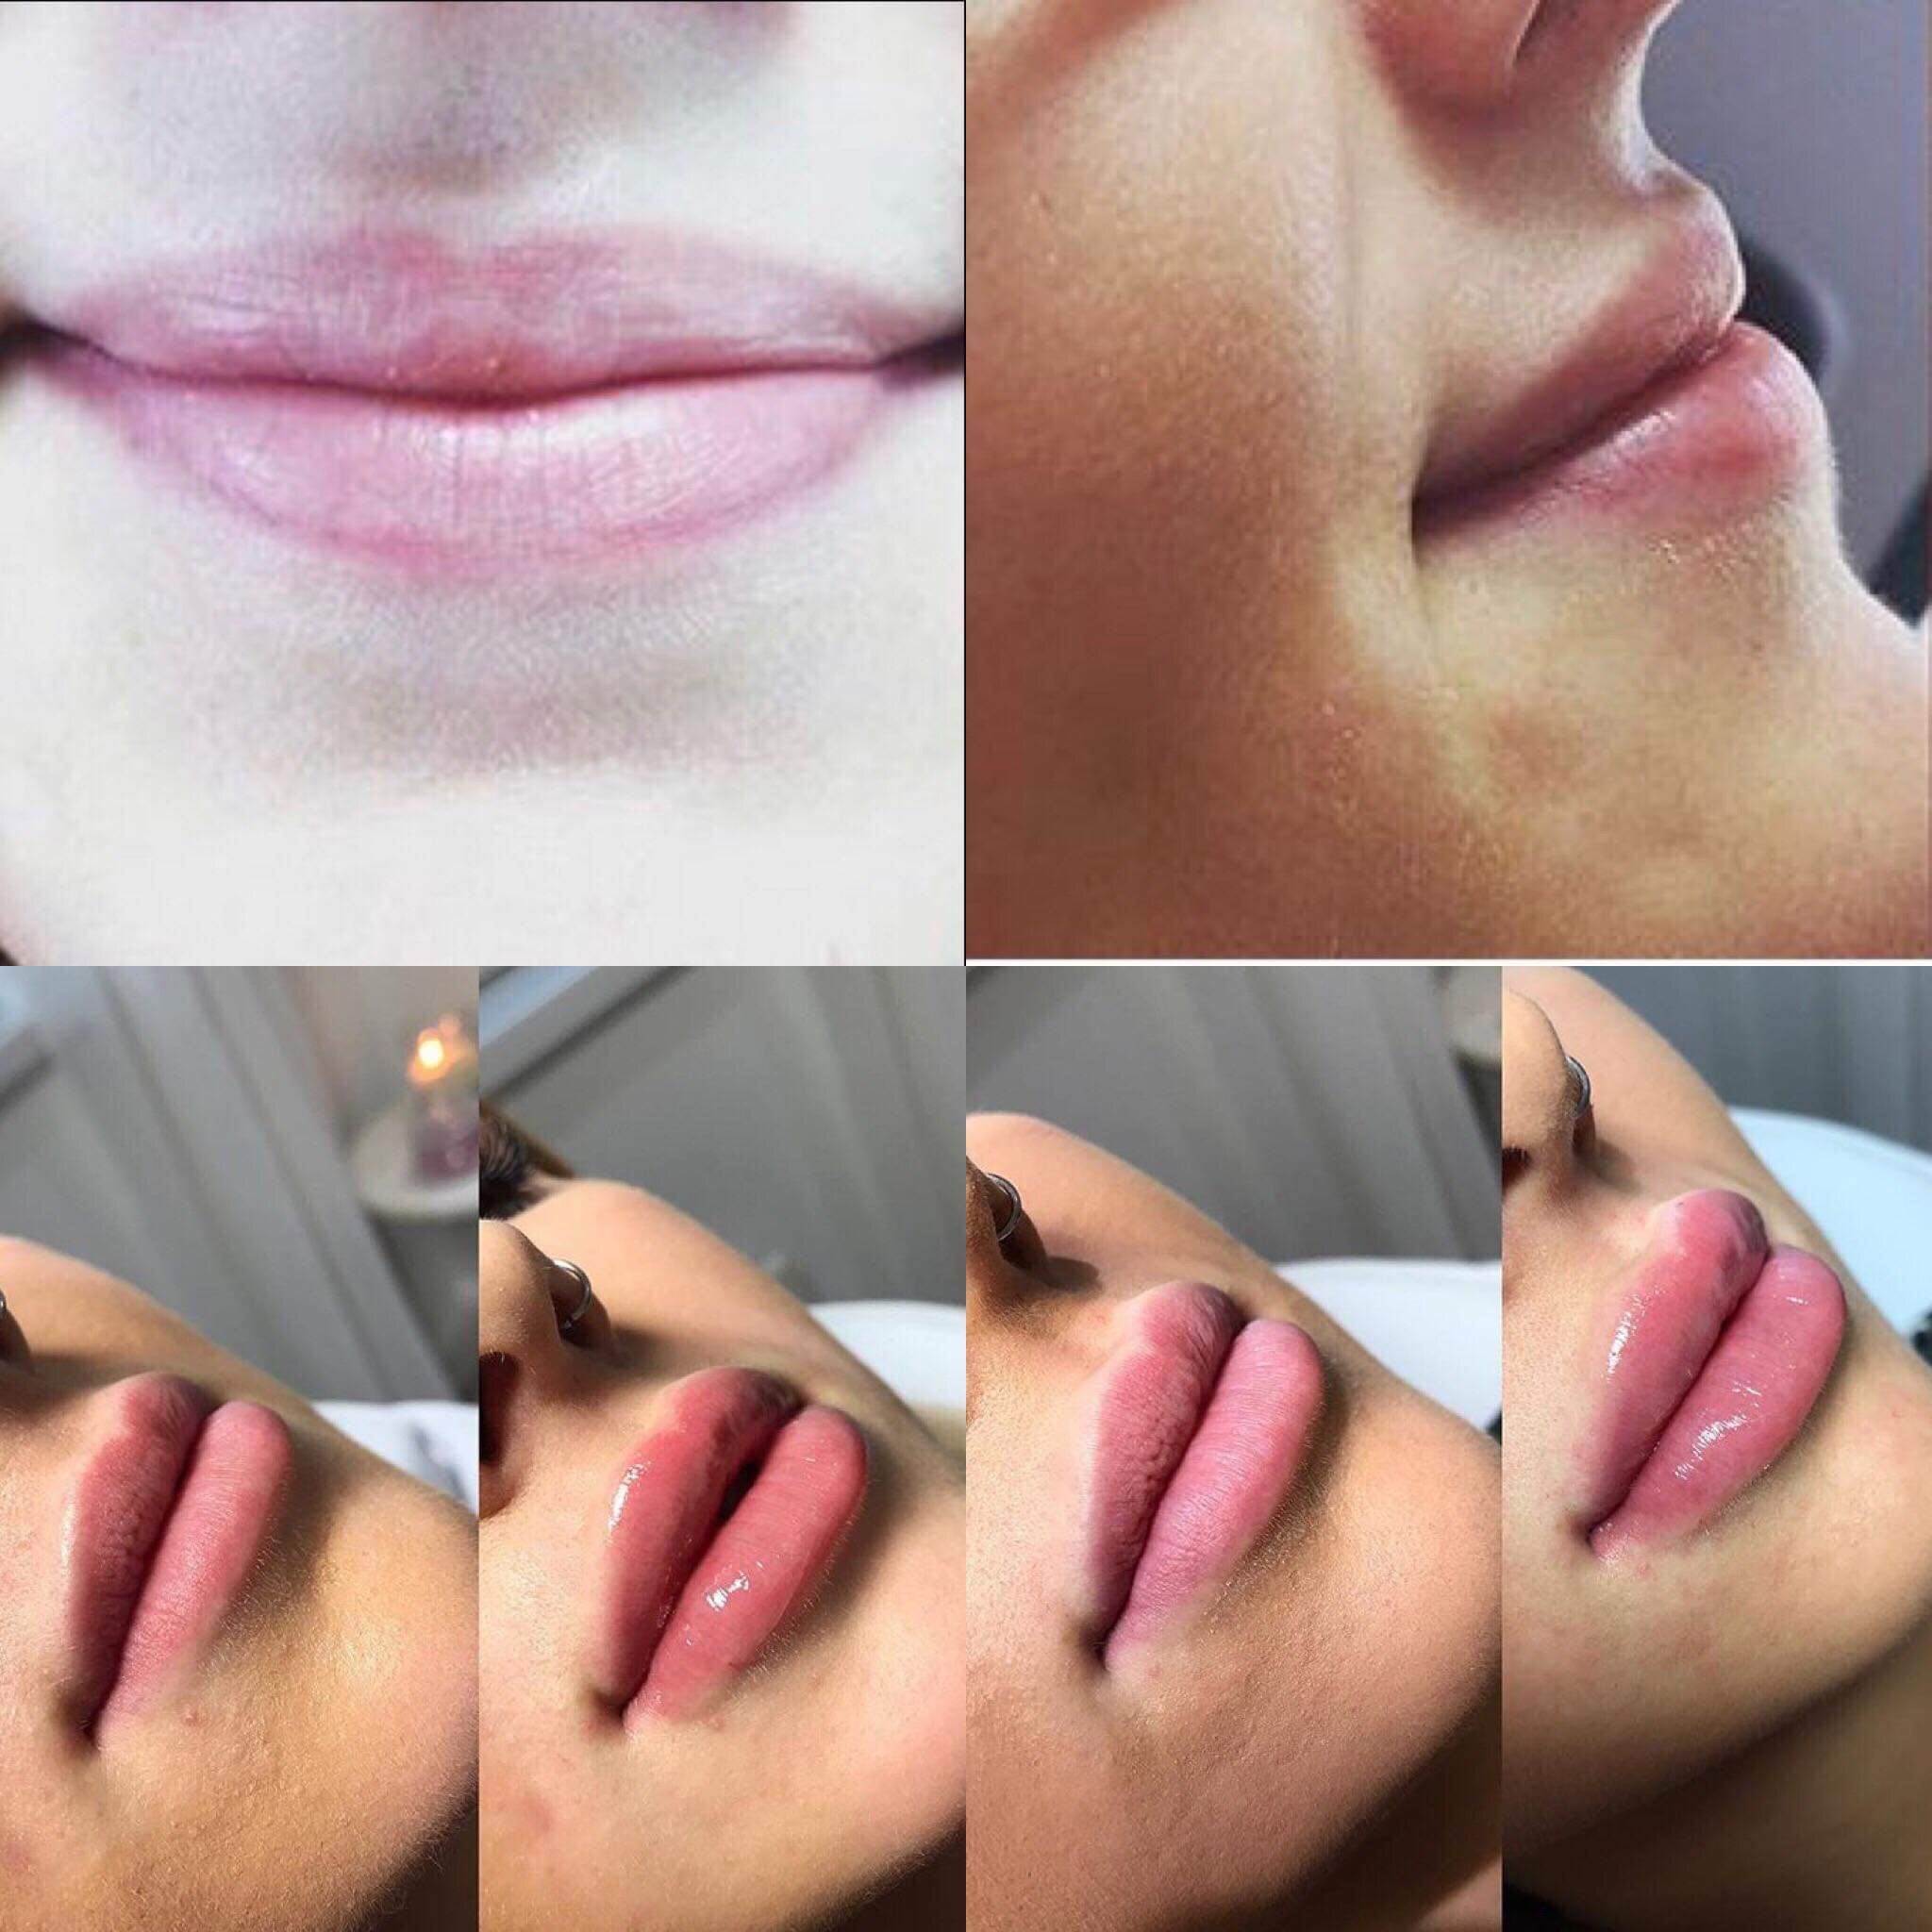 Before and after images of Bethan's lips up close showing how the lip-filler has defined and plumped her lips.